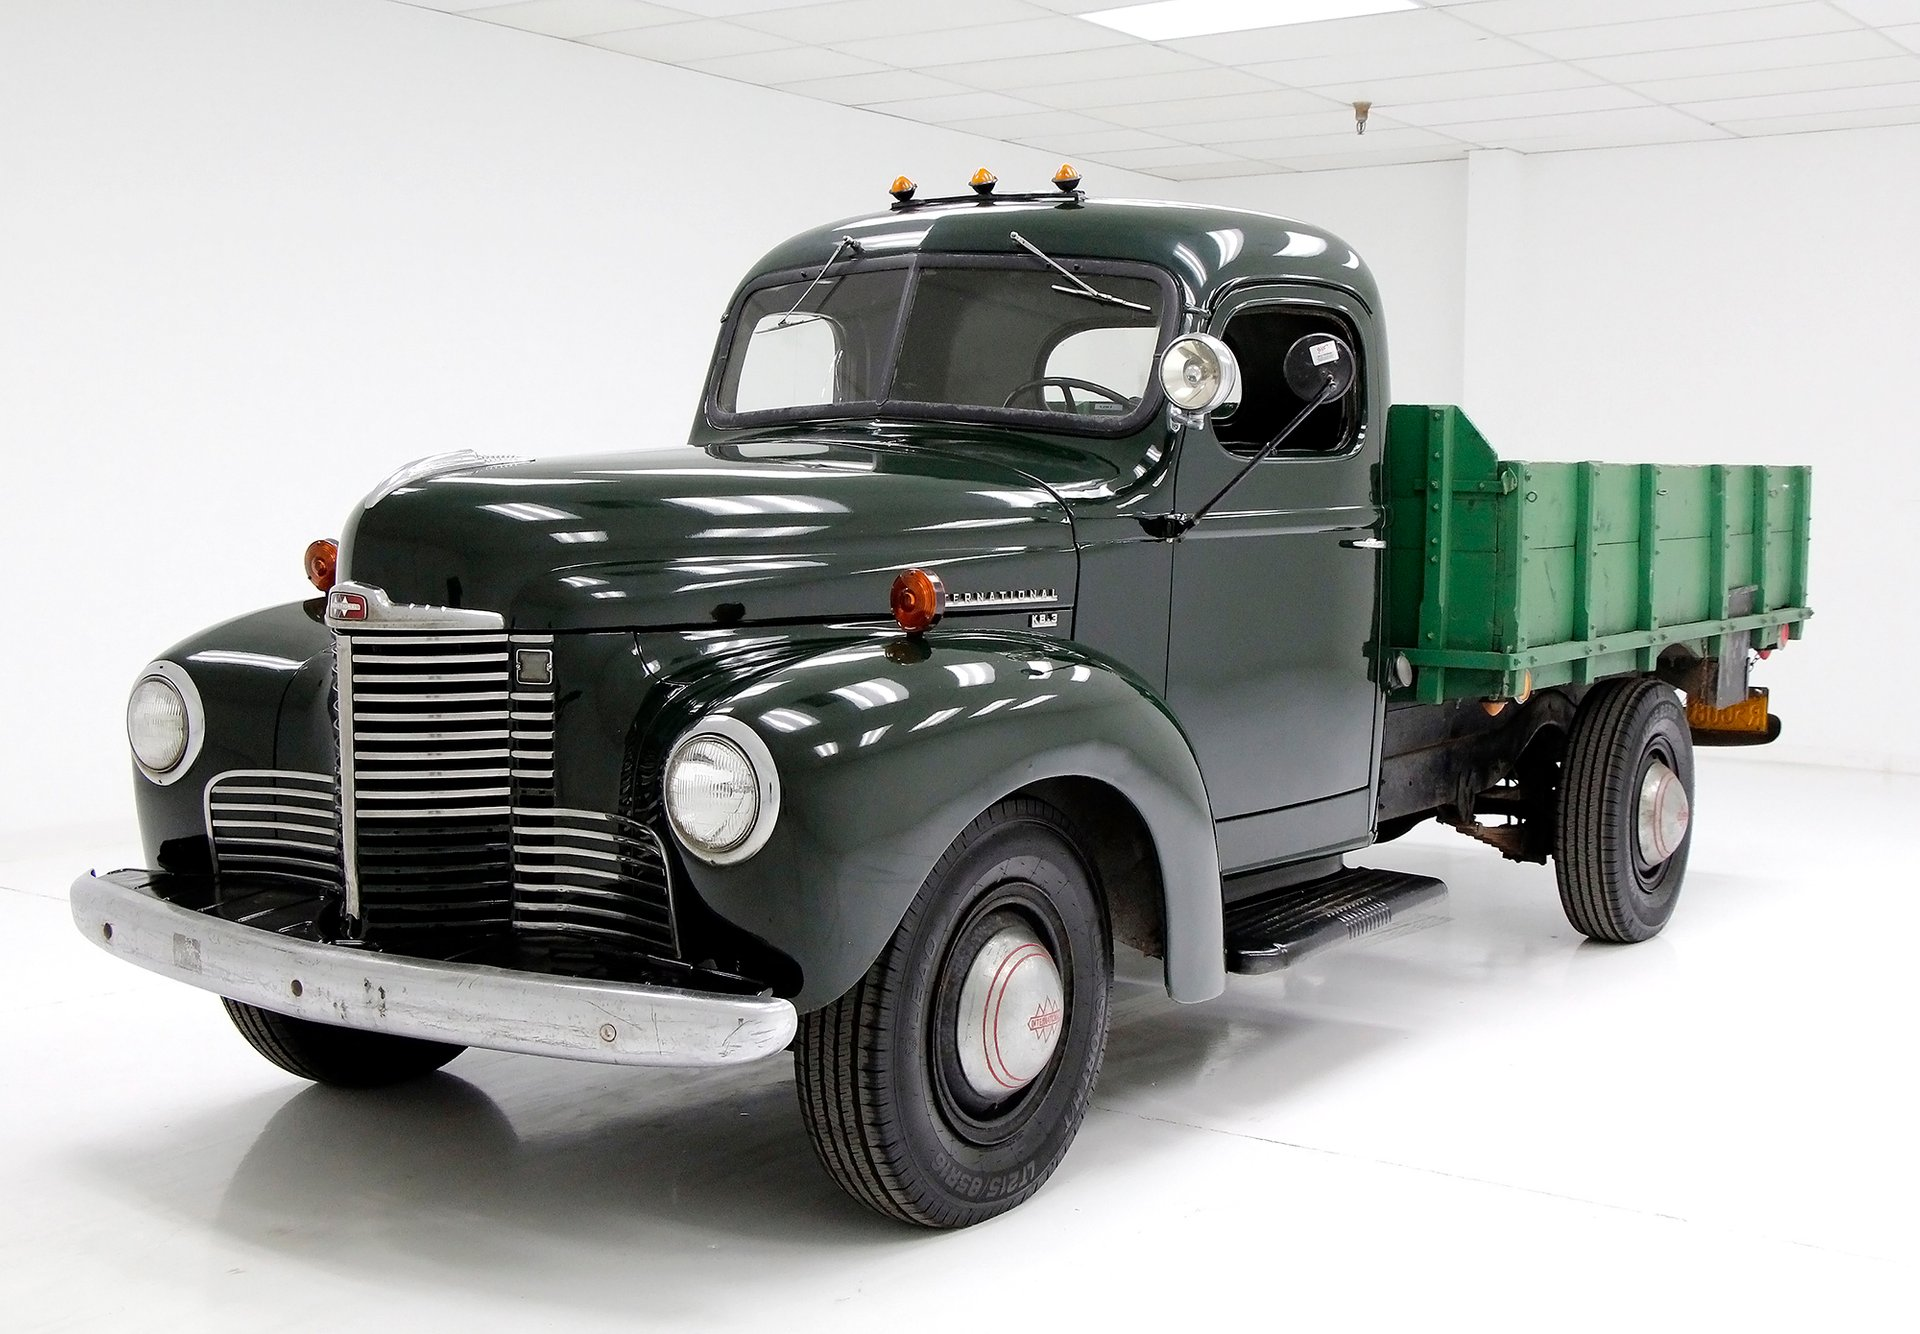 1947 International KB3 Truck